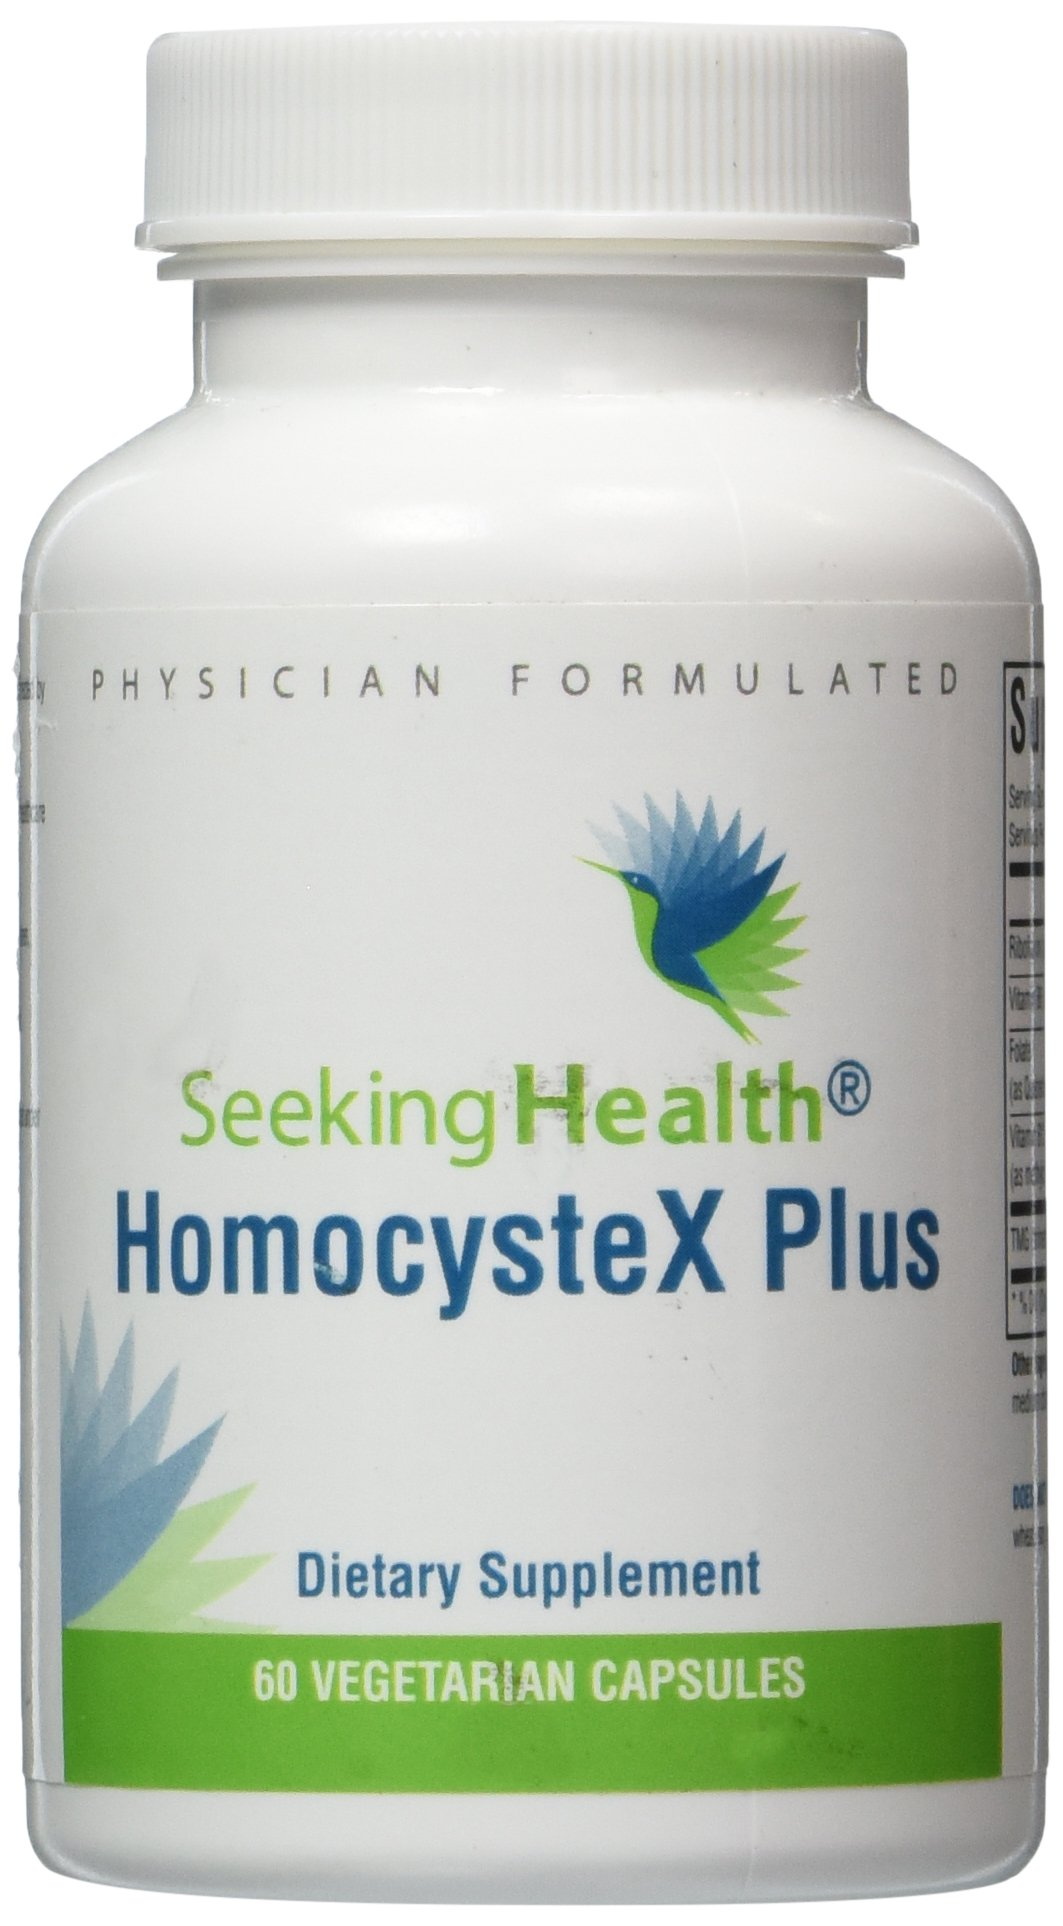 HomocysteX Plus | Provides Vitamins B2, B6, B12, Folate And TMG | 60 Vegetarian Capsules | Physician Formulated | Seeking Health